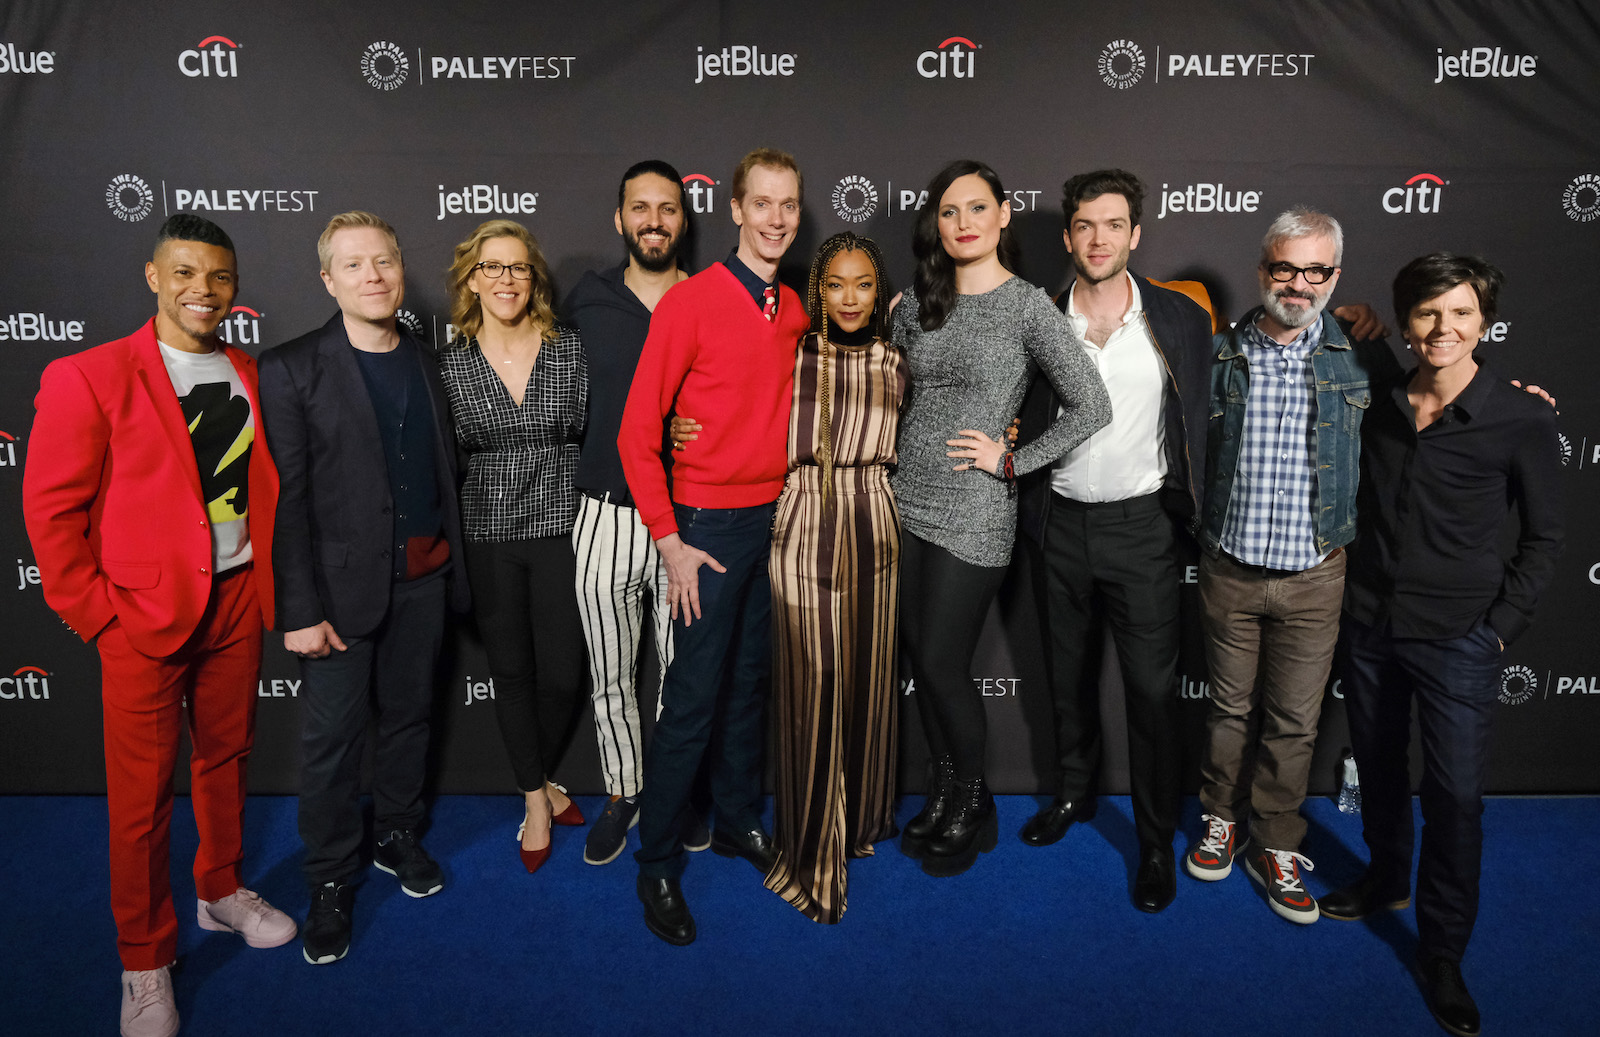 disco-cast-and-producers-paleyfest-la-march-2019.jpg